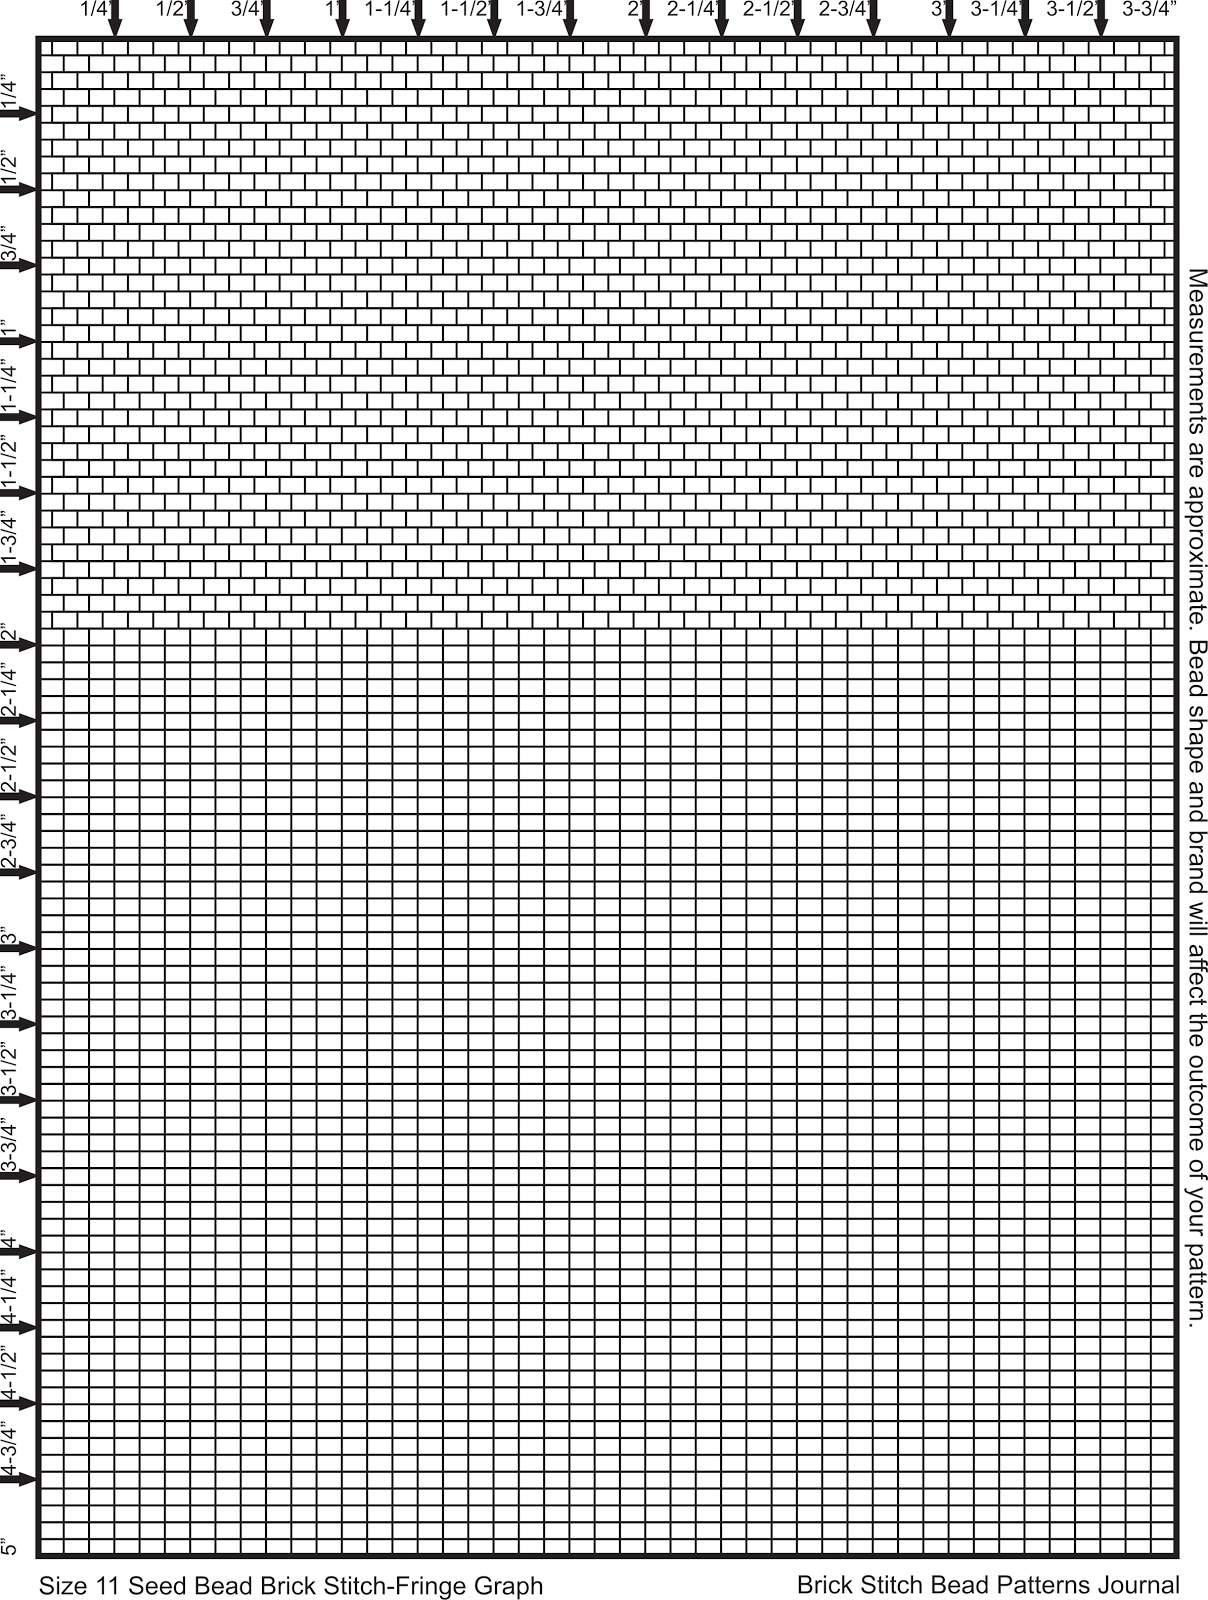 graphic about Bead Size Chart Printable called Brick Sch Bead Behavior Magazine: Dimension 11 Seed Bead Graph